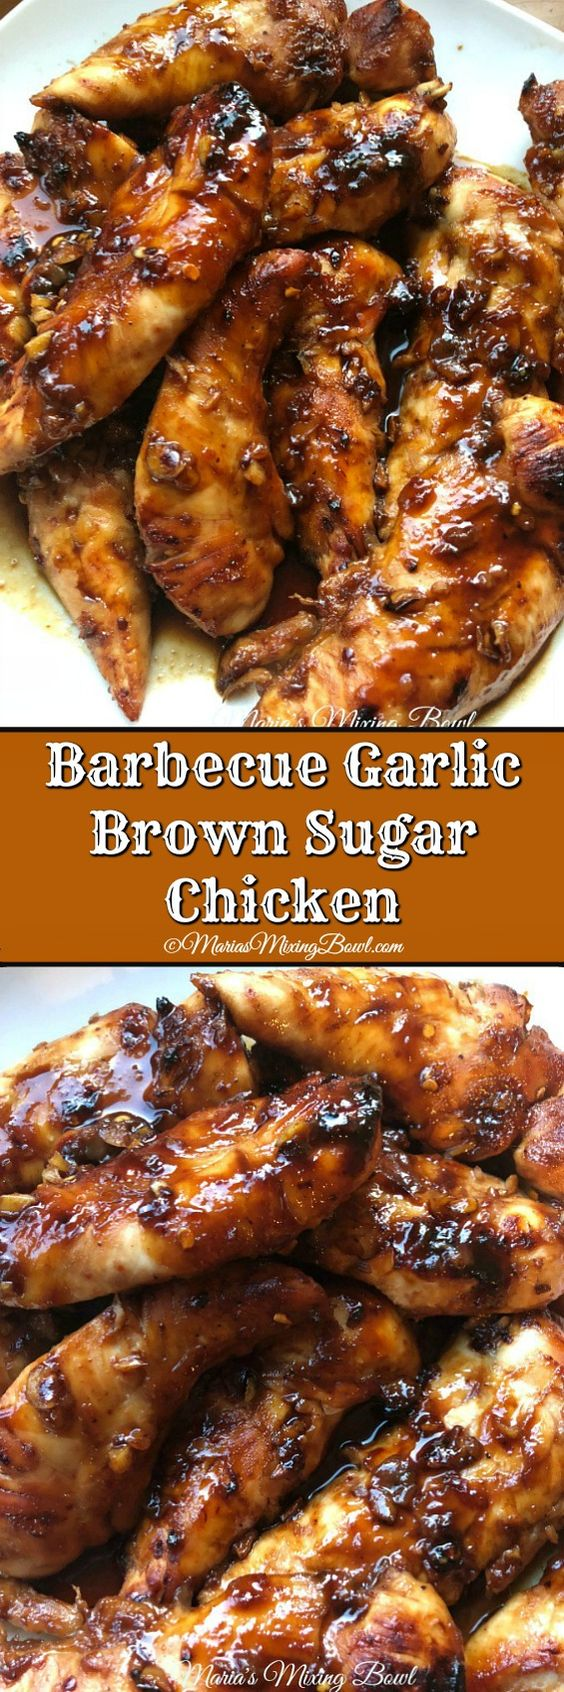 Barbecue Garlic Brown Sugar Chicken is a smoky, slightly sweet chicken with just a bit of spice. The flavors are perfect together. They all compliment each other amazingly well!